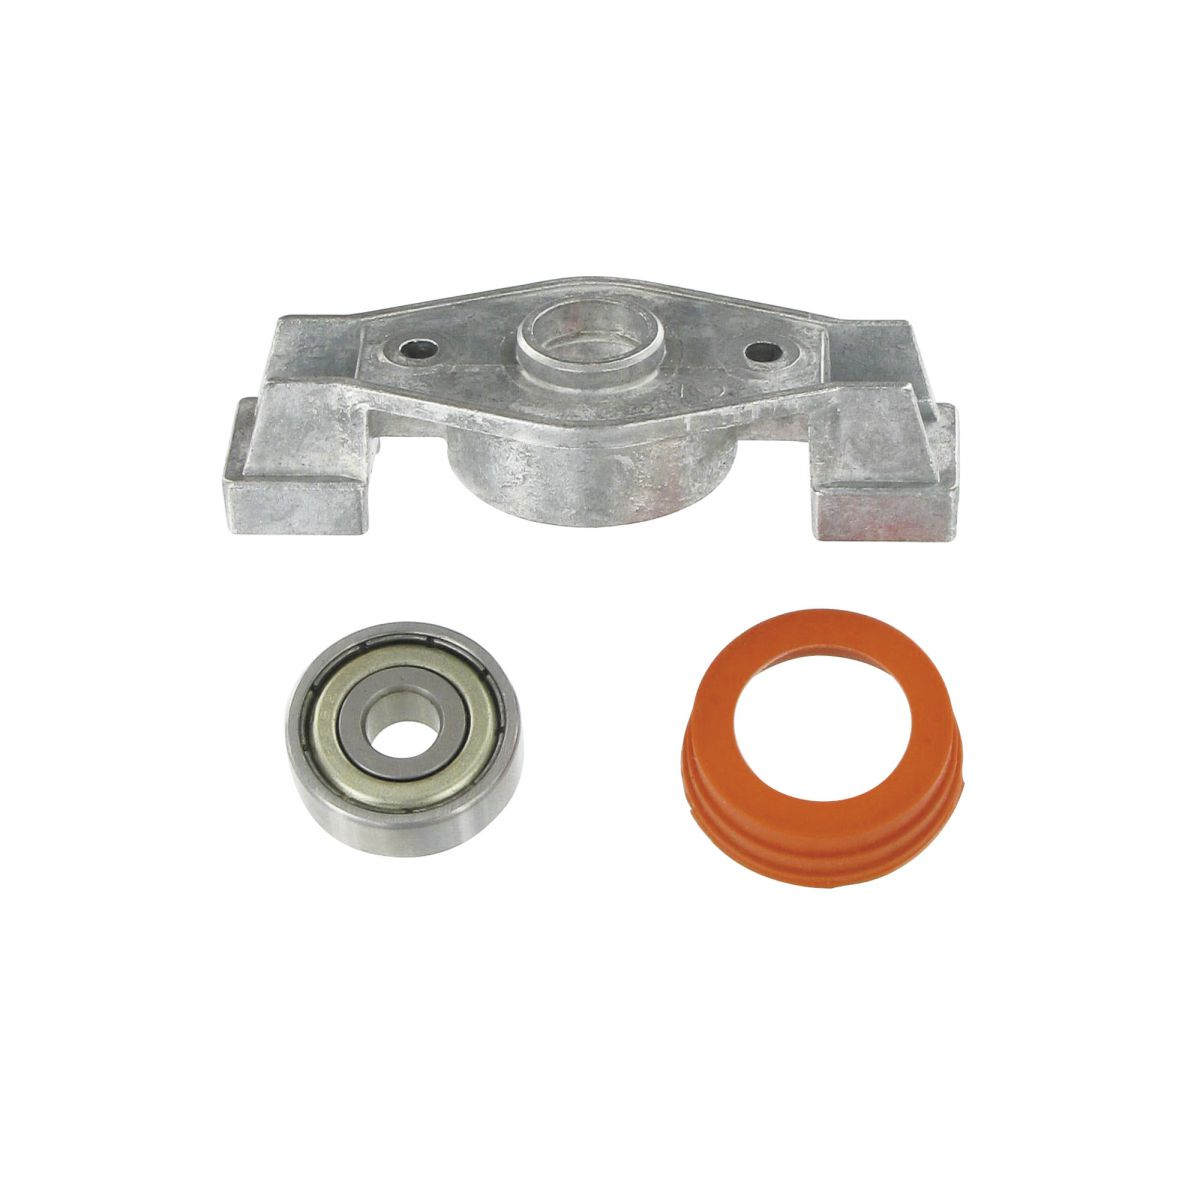 set ball bearing holder and rear bar for crouzet motor 23313606 75520137 79207195